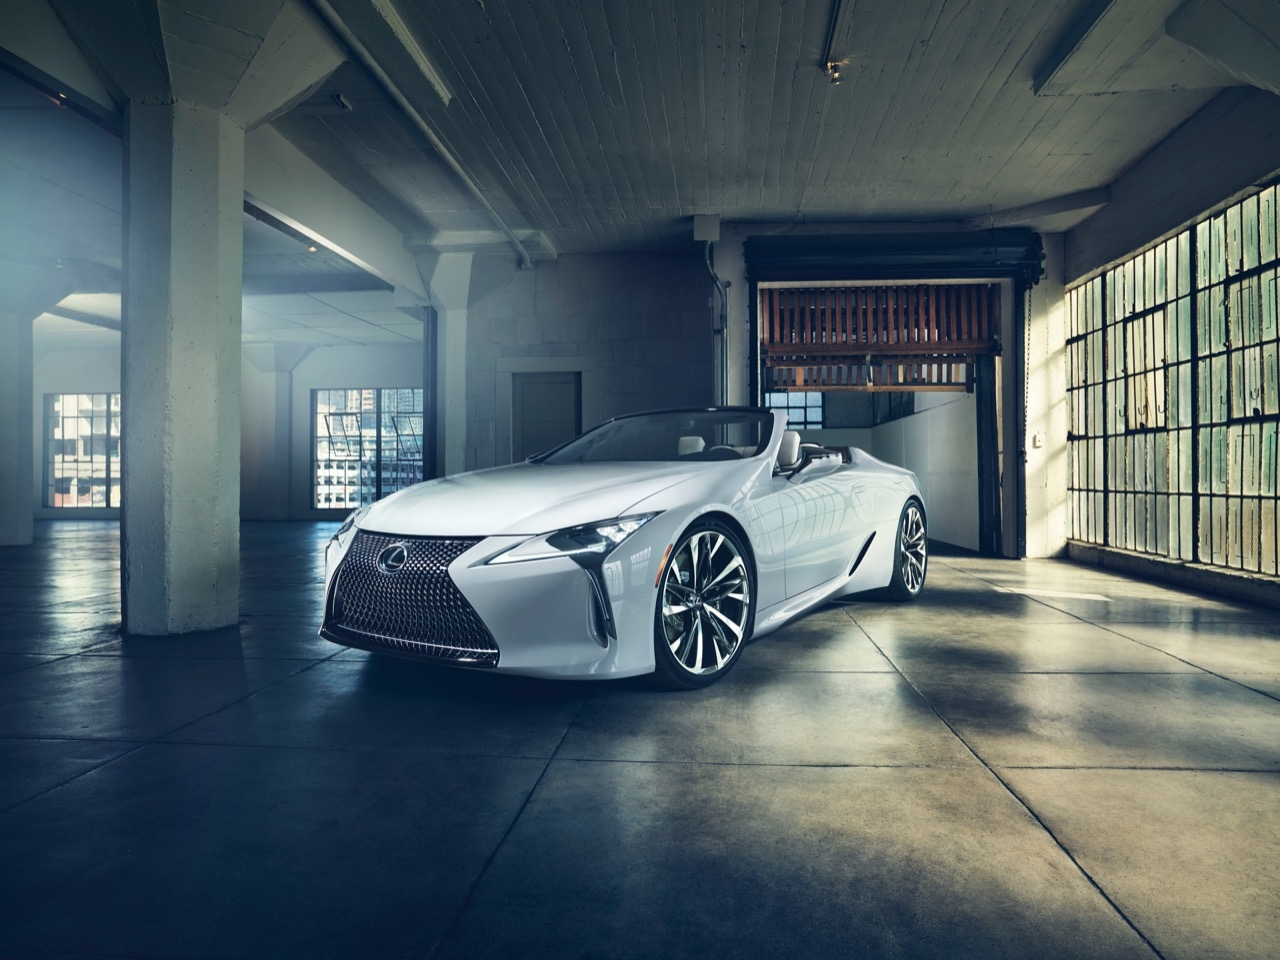 Lexus LC Convertible - co wiadomo?